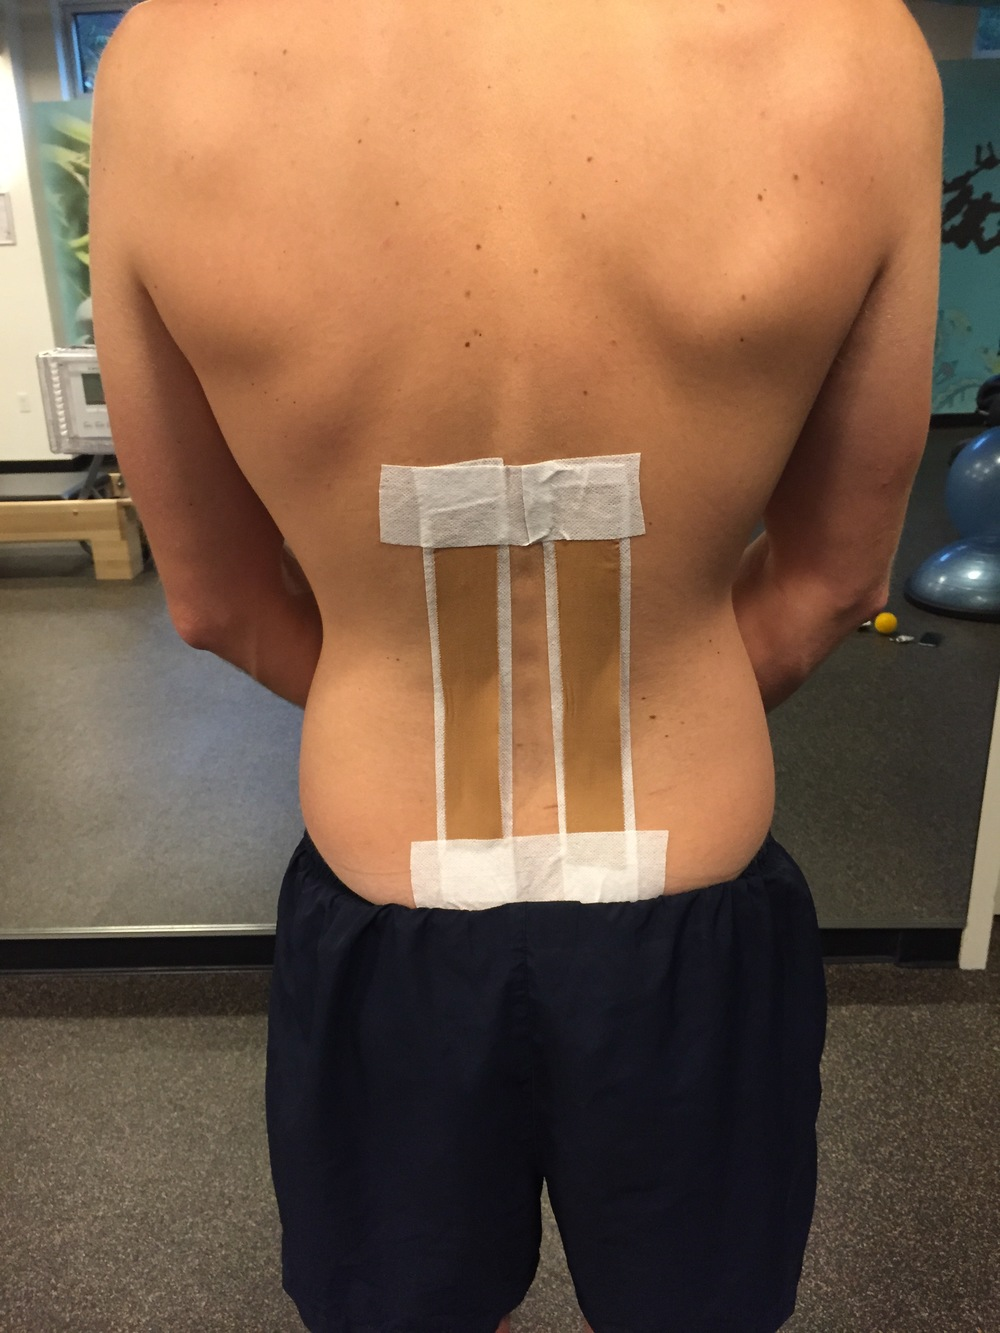 Taping with vertical strips will block lumbar flexion. I use this taping when I am trying to increase proprioception and patient awareness about their lumbar flexion during functional movements.